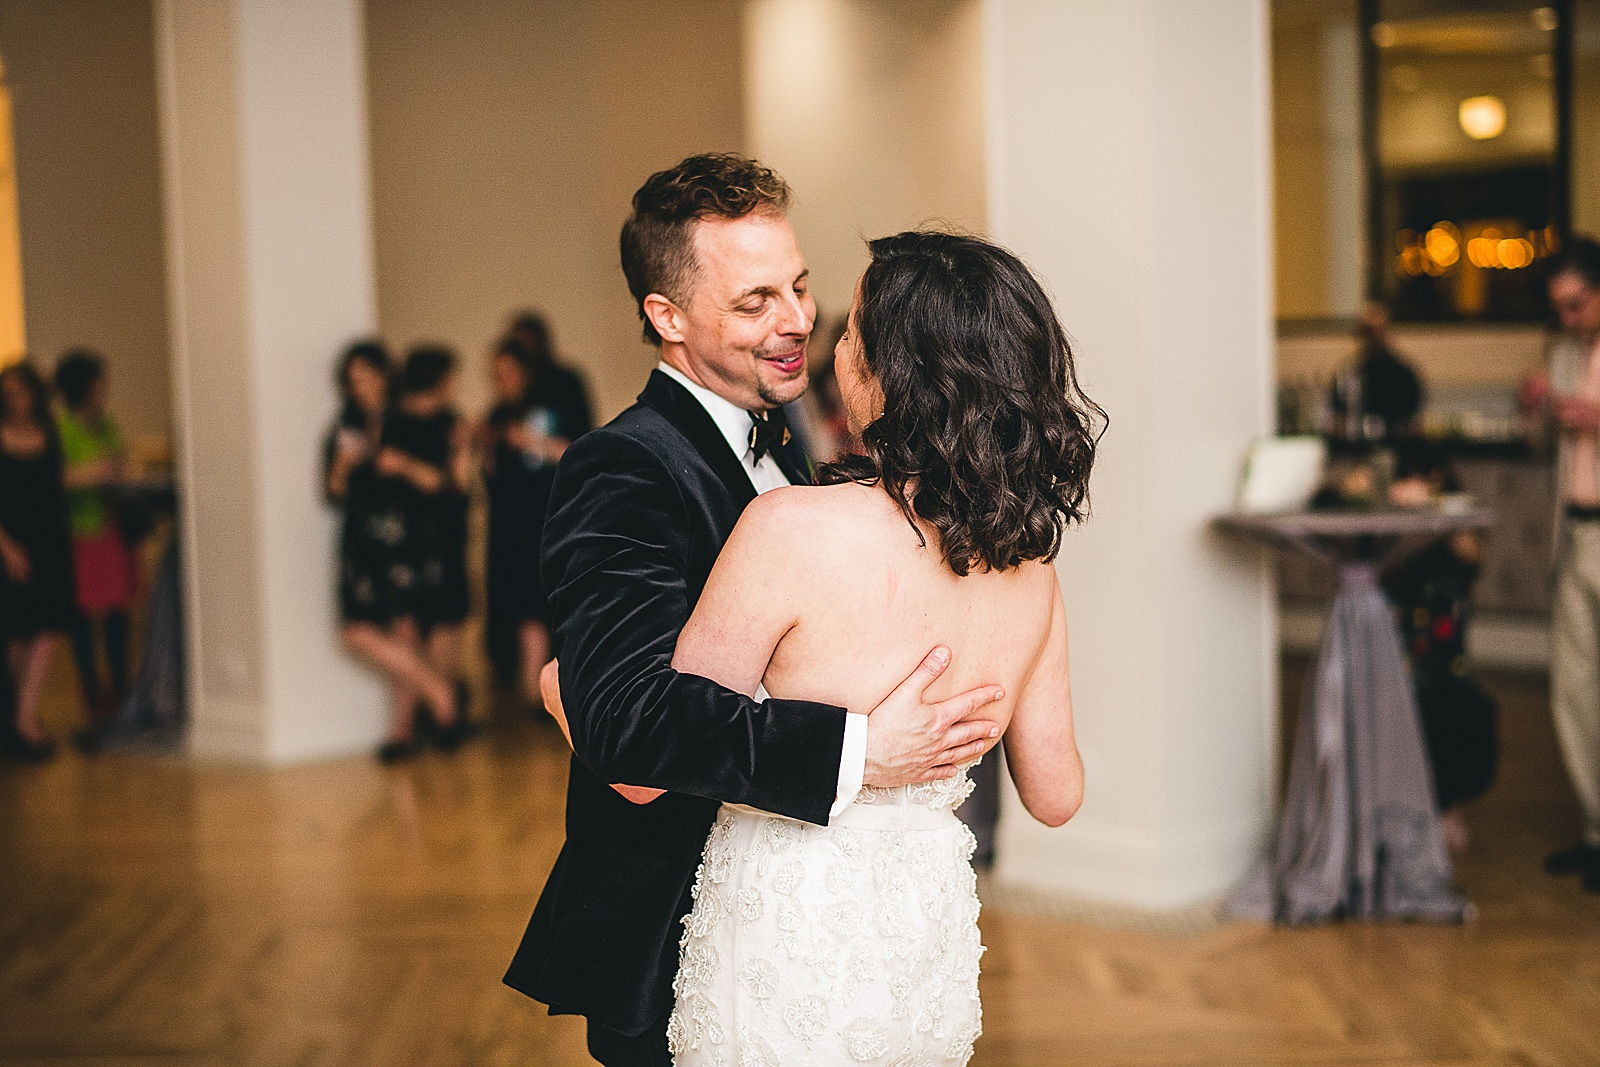 46 first dance at chicago illuminating company - Chicago Illuminating Company Wedding // Samantha + Jeremy